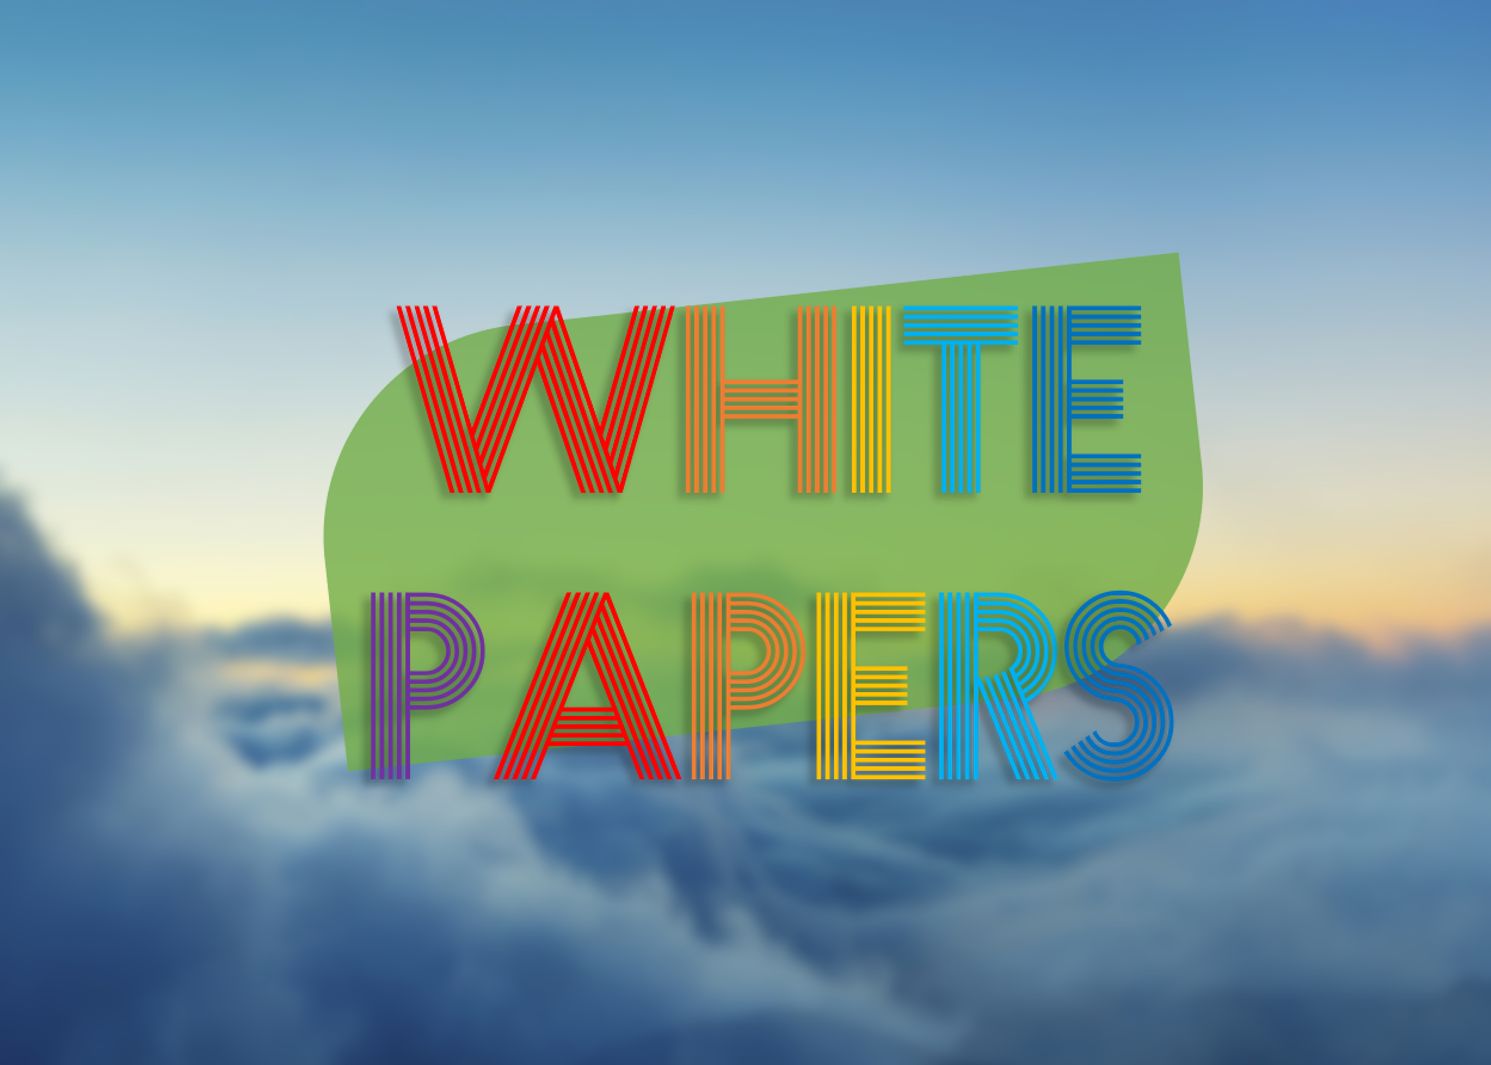 NEW WHITE PAPER AVAILABLE!    Working to achieve organization goals often takes more than just making one. It takes an understanding of both where you are now and an account of all of your organizational elements and influencers that can make or break your transition to success.  So we've built a better way to not only achieve your goals, but how to powerfully track and address those elements and influencers.    WHITE PAPER: Solving Nonprofit Goal Achievement Failure